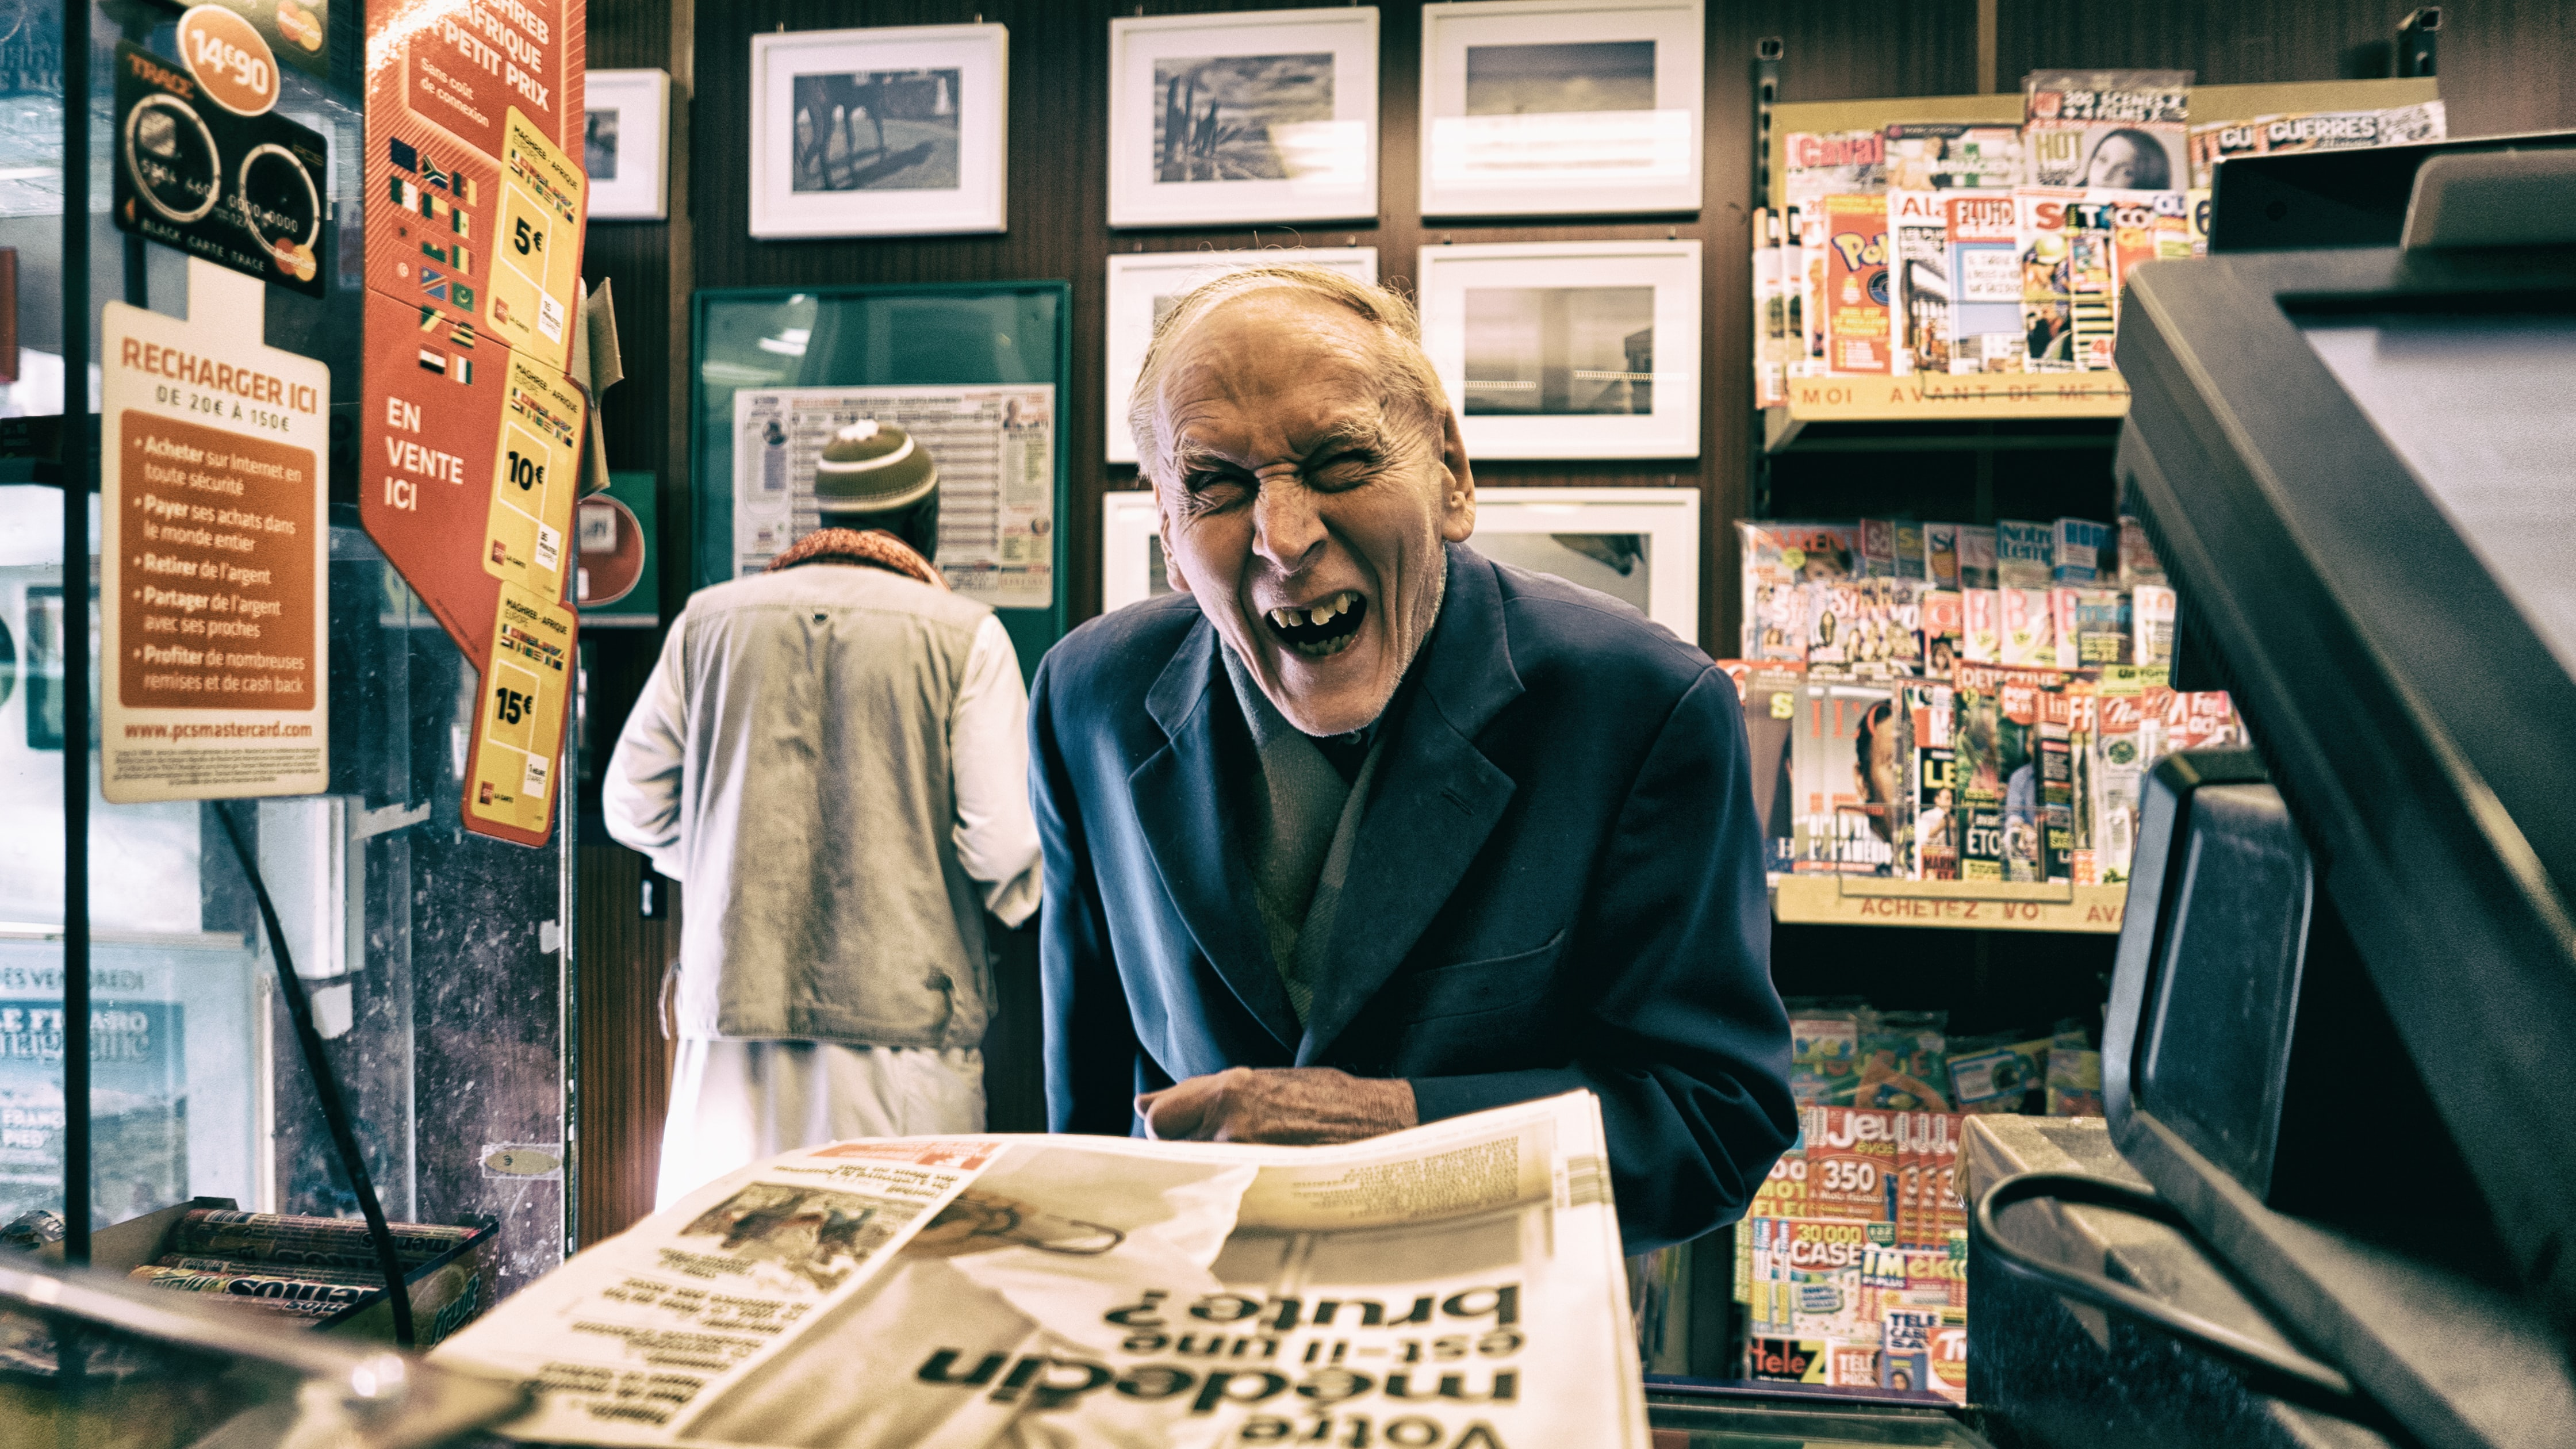 An old man giving a smile at the counter of a newspaper shop.